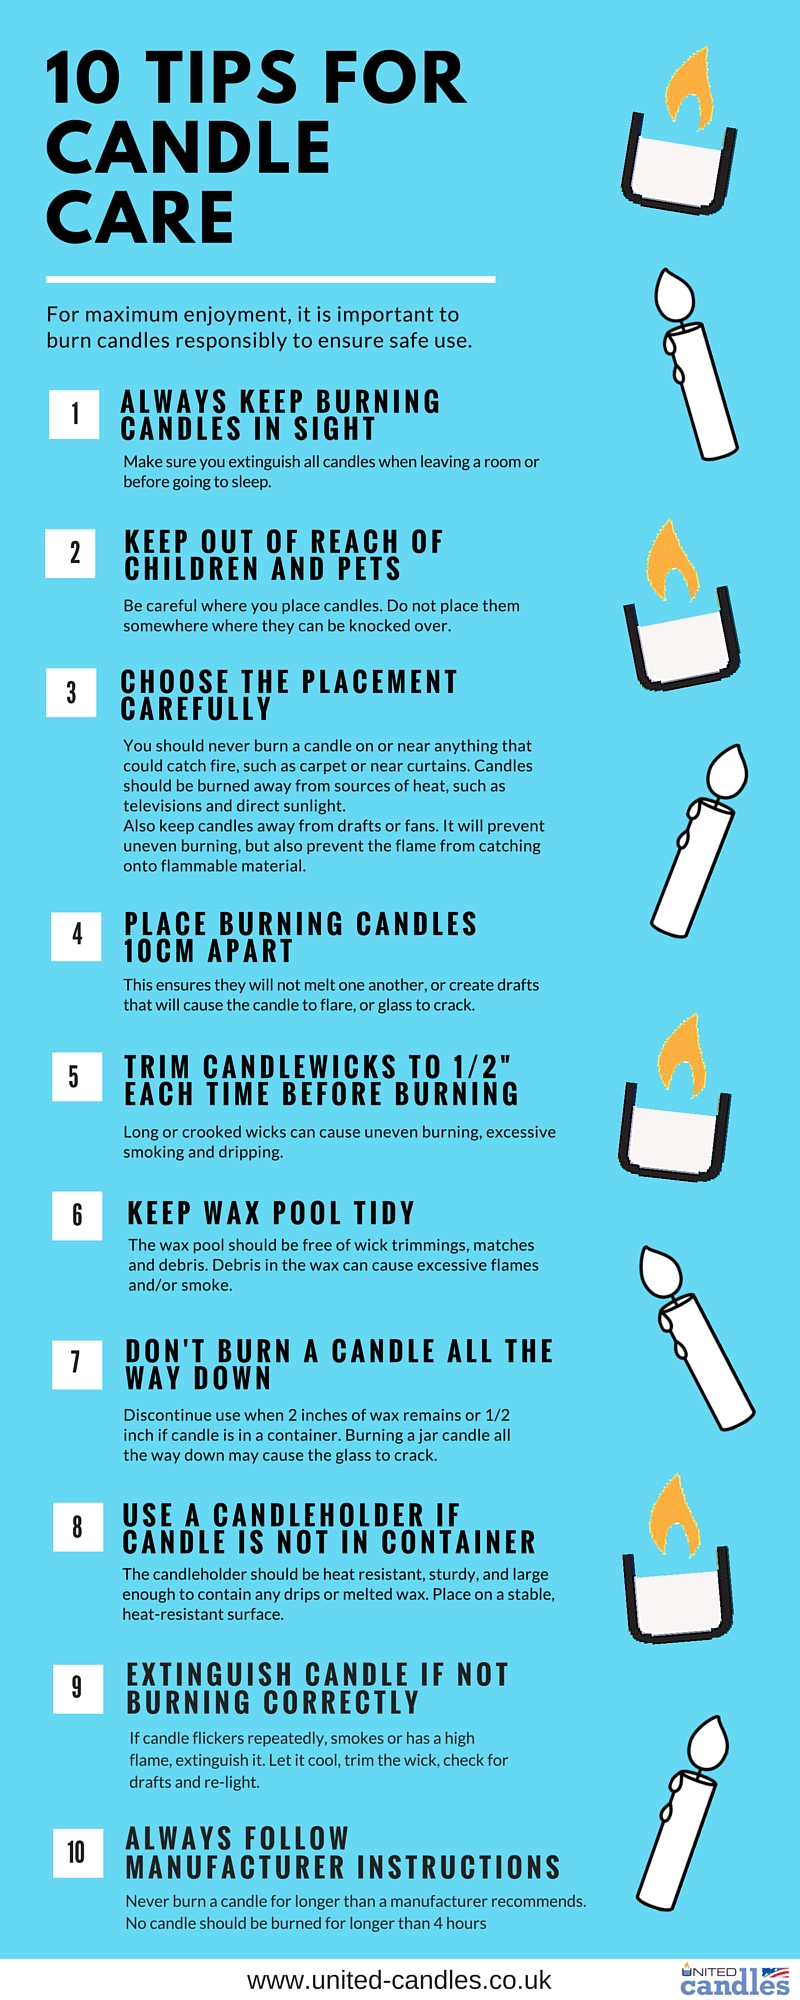 10 Tips for Candle Care.jpg